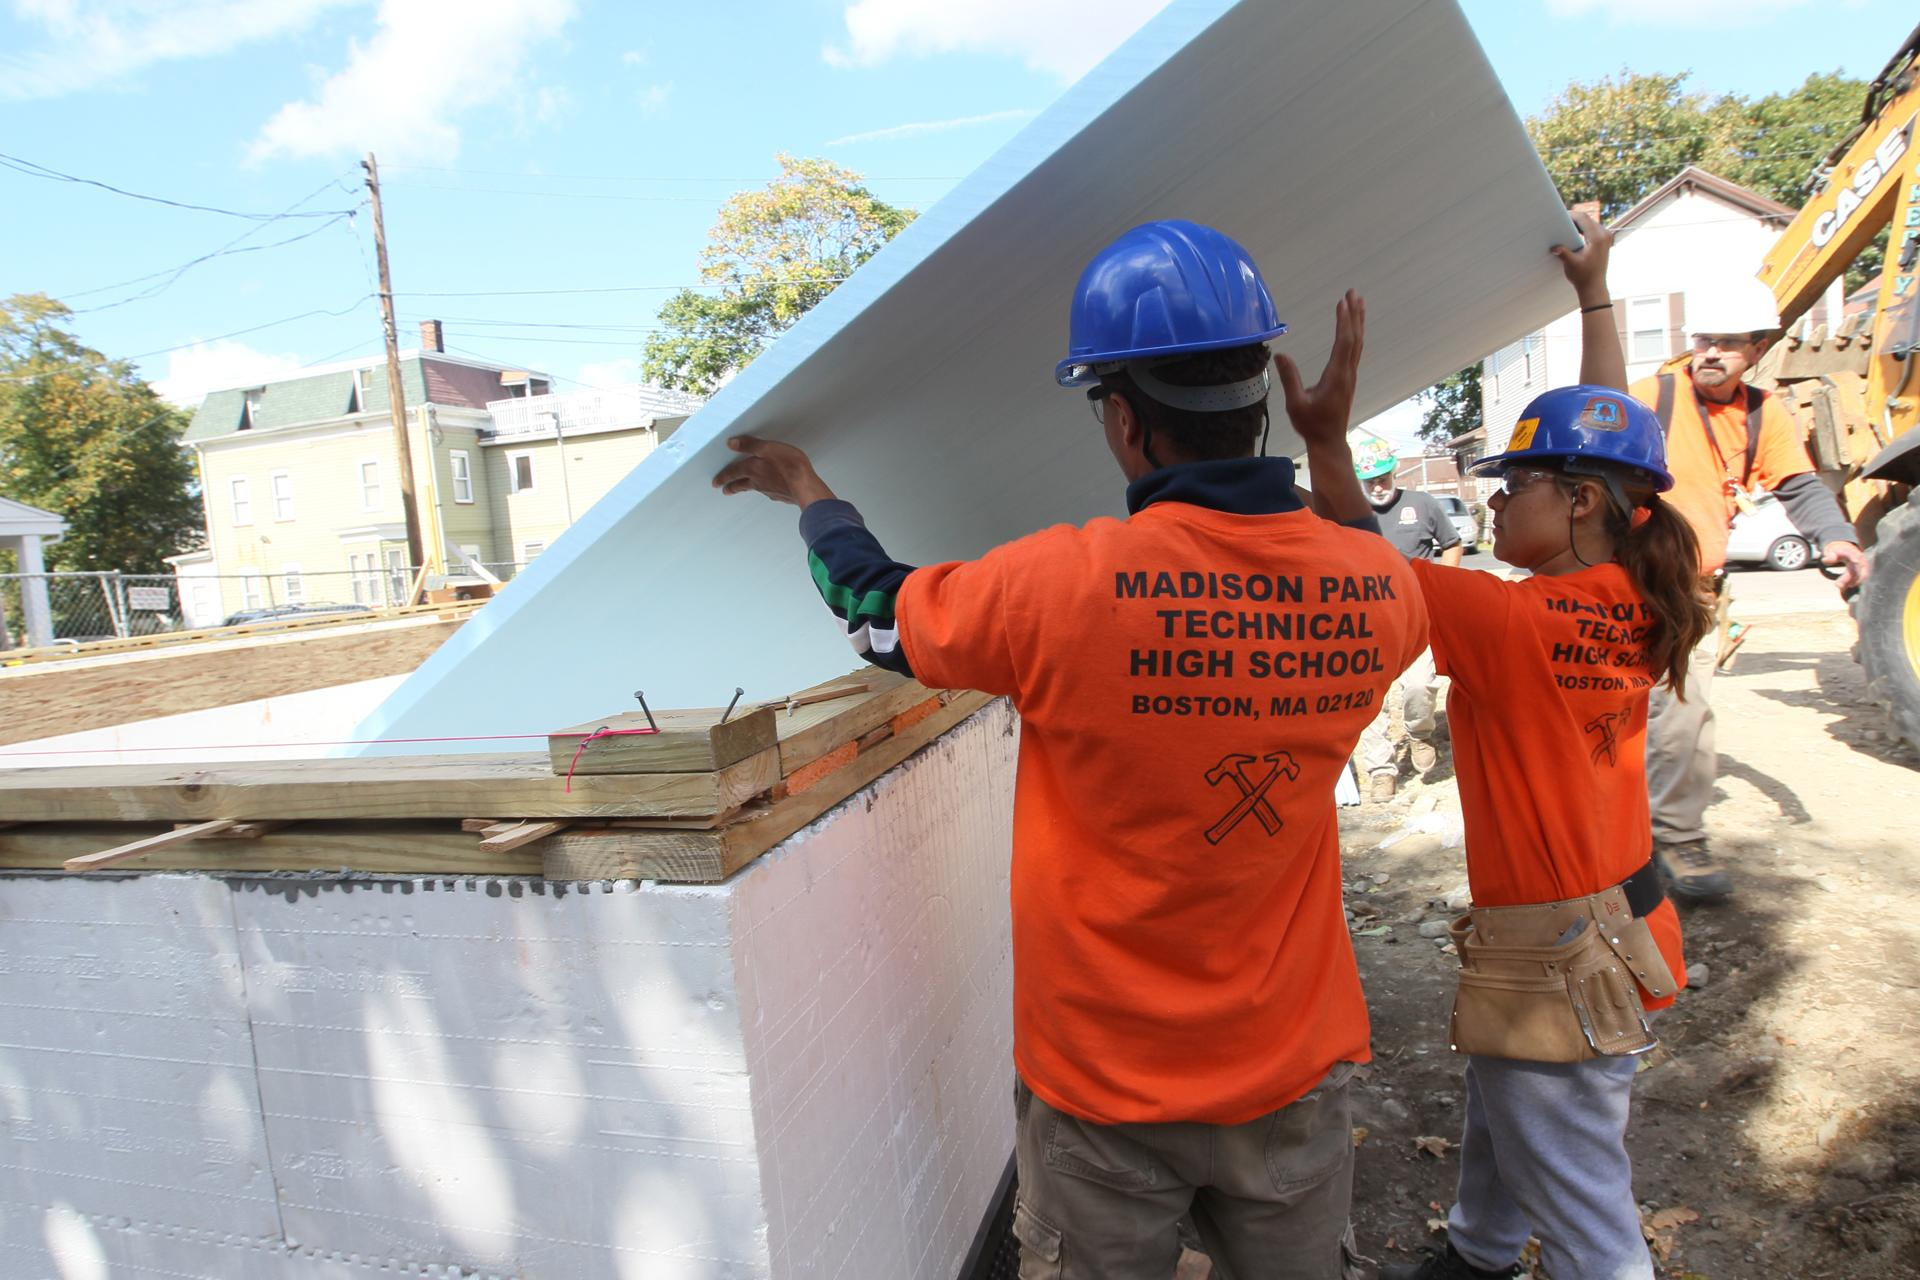 boston s long journey to develop stellar vocational school marked carpentry students from madison park technical vocational high school are helping to build a home at